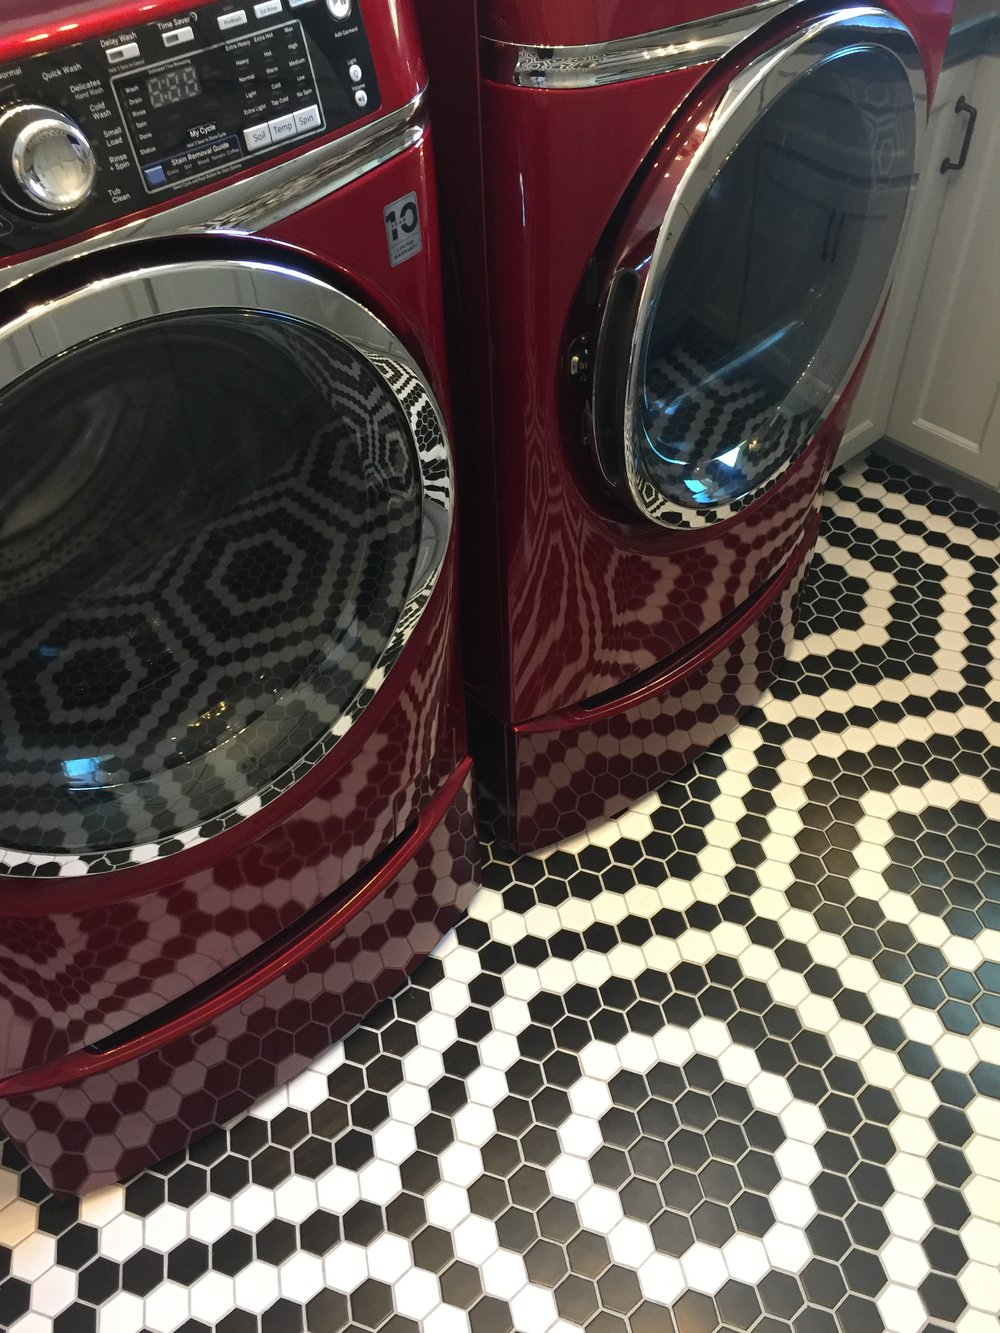 Southern Living Showcase Home - laundry room with red appliances and black and white tile floor